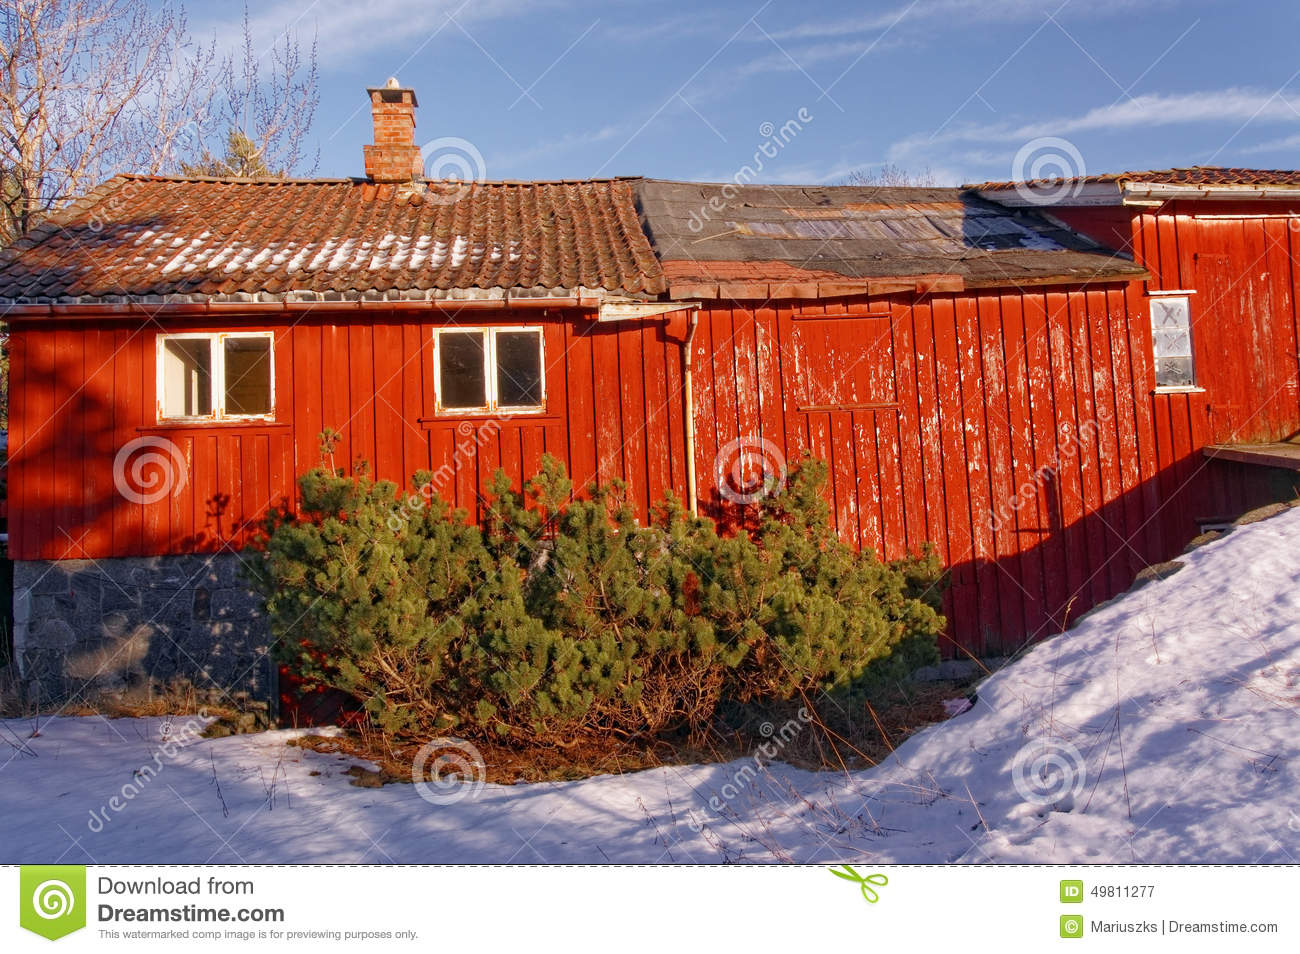 Big Red Barn With Wooden Wall Decor Stock Image Image Of